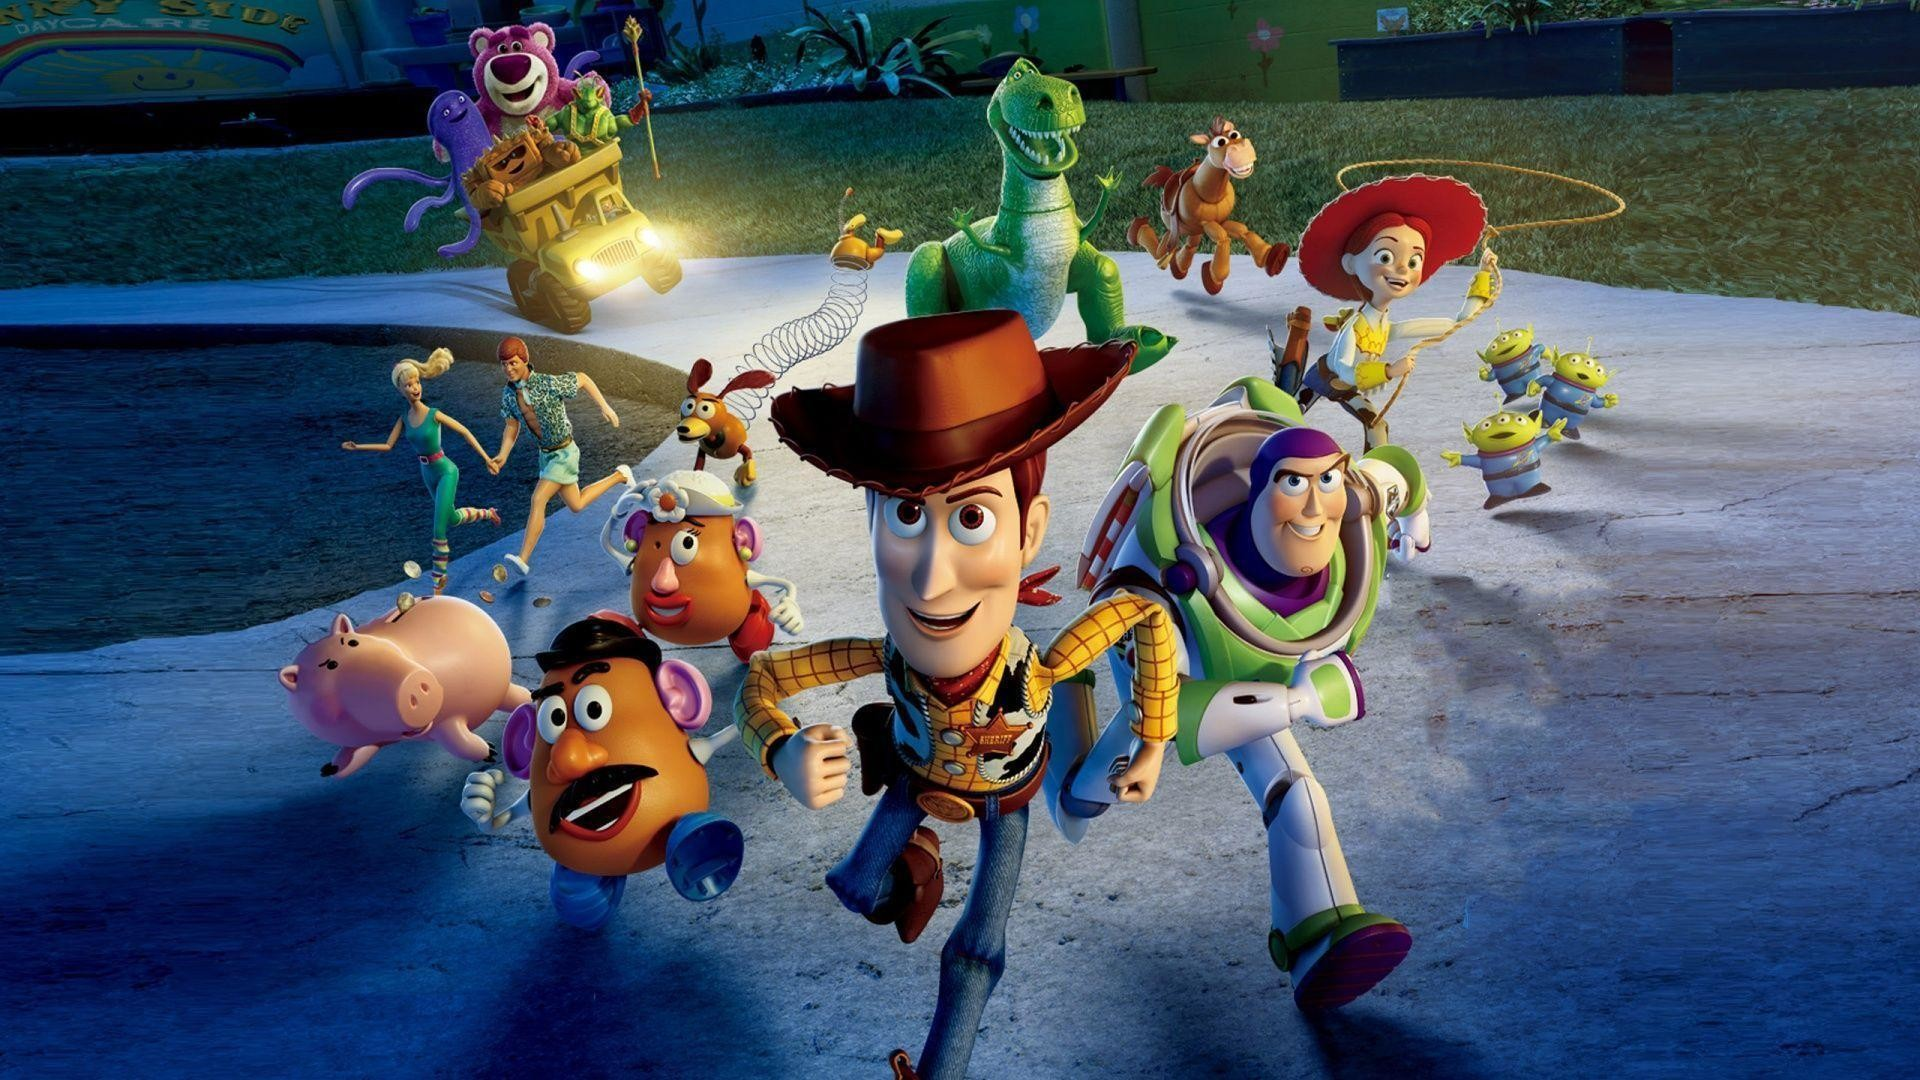 a review of pixars animated movie toy story 'toy story' – twenty-one years ago, pixar made movie history with toy story, the first full-length film to be animated by computers pixar had won oscars for its short films, but toy story proved that it could sustain its storytelling magic over the length of a feature film.